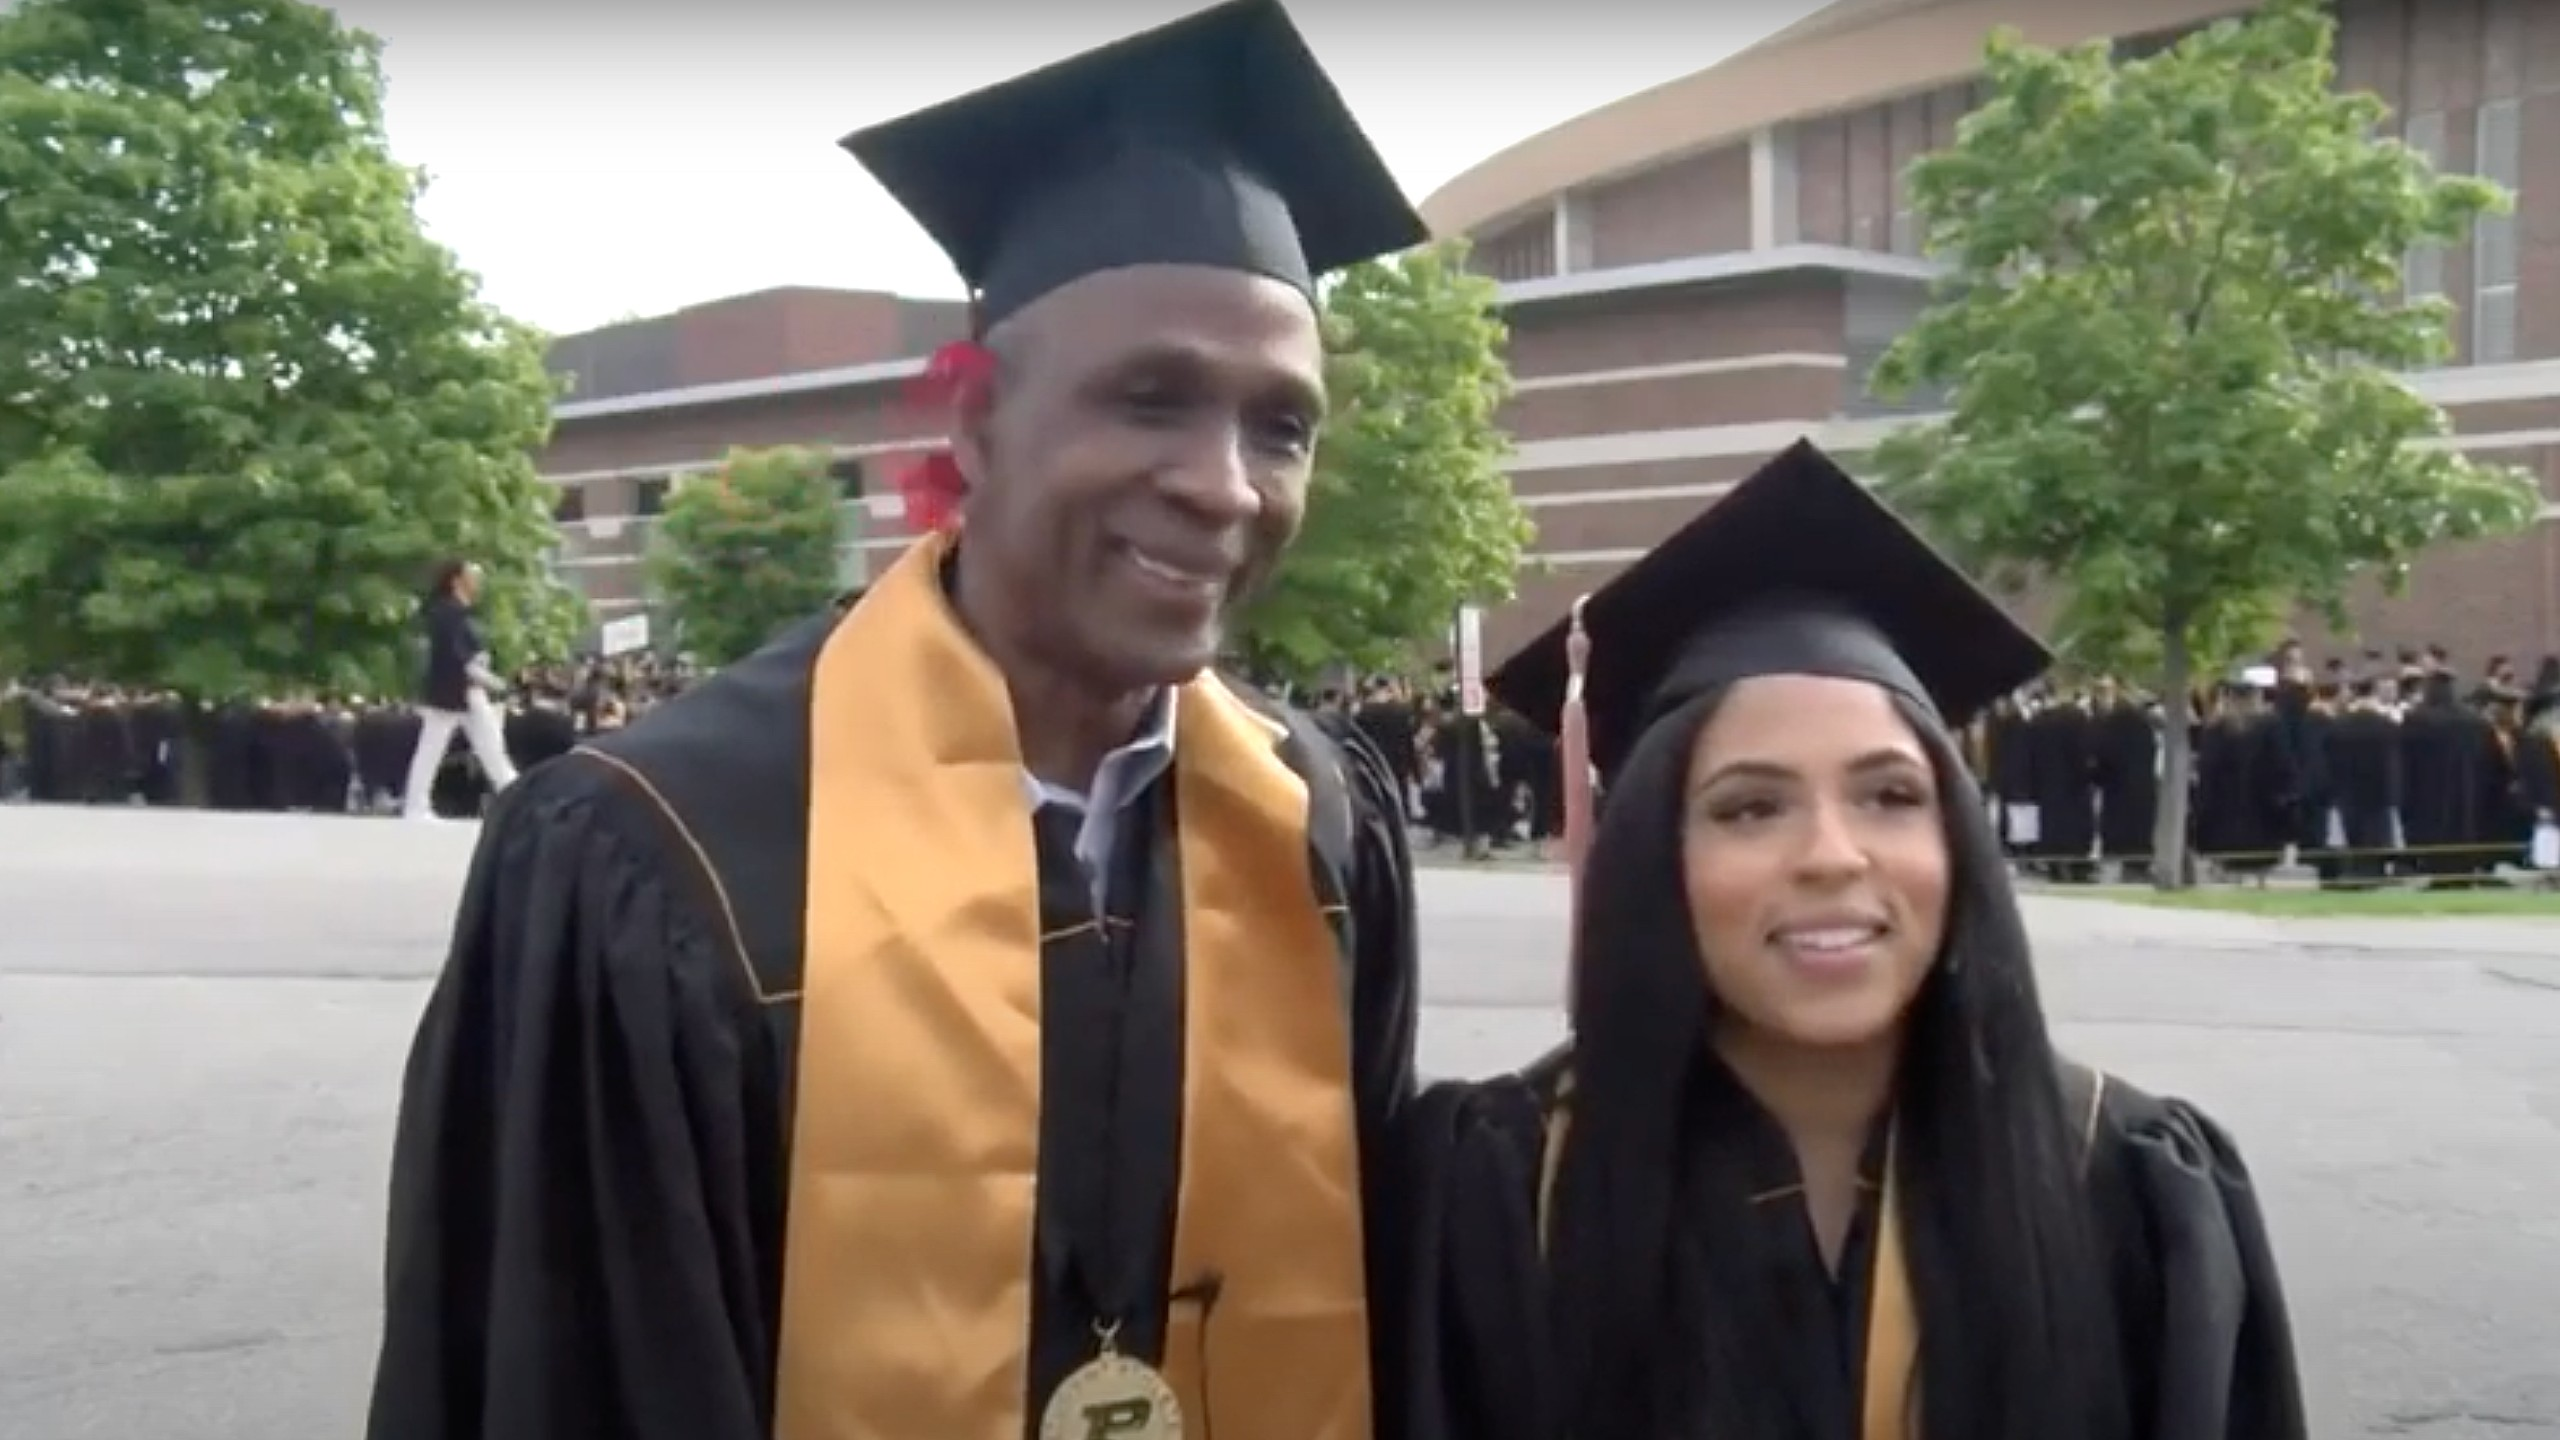 Former NFL player graduates with daughter